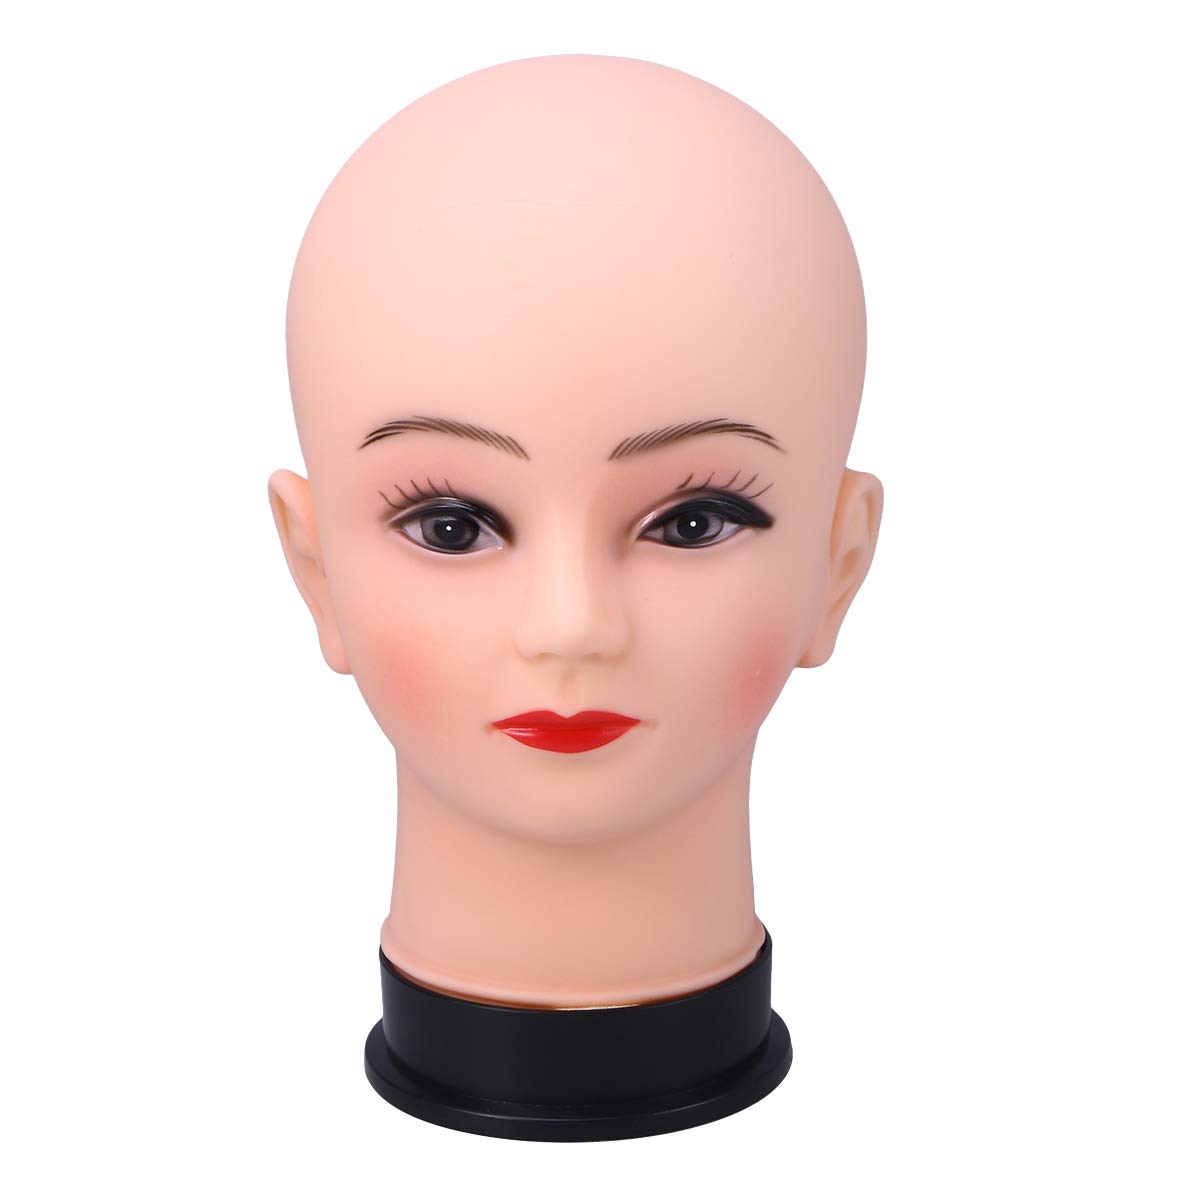 Lurrose Headwear Exhibition Stand Hairstyling Practice Heads Model Wig Stand